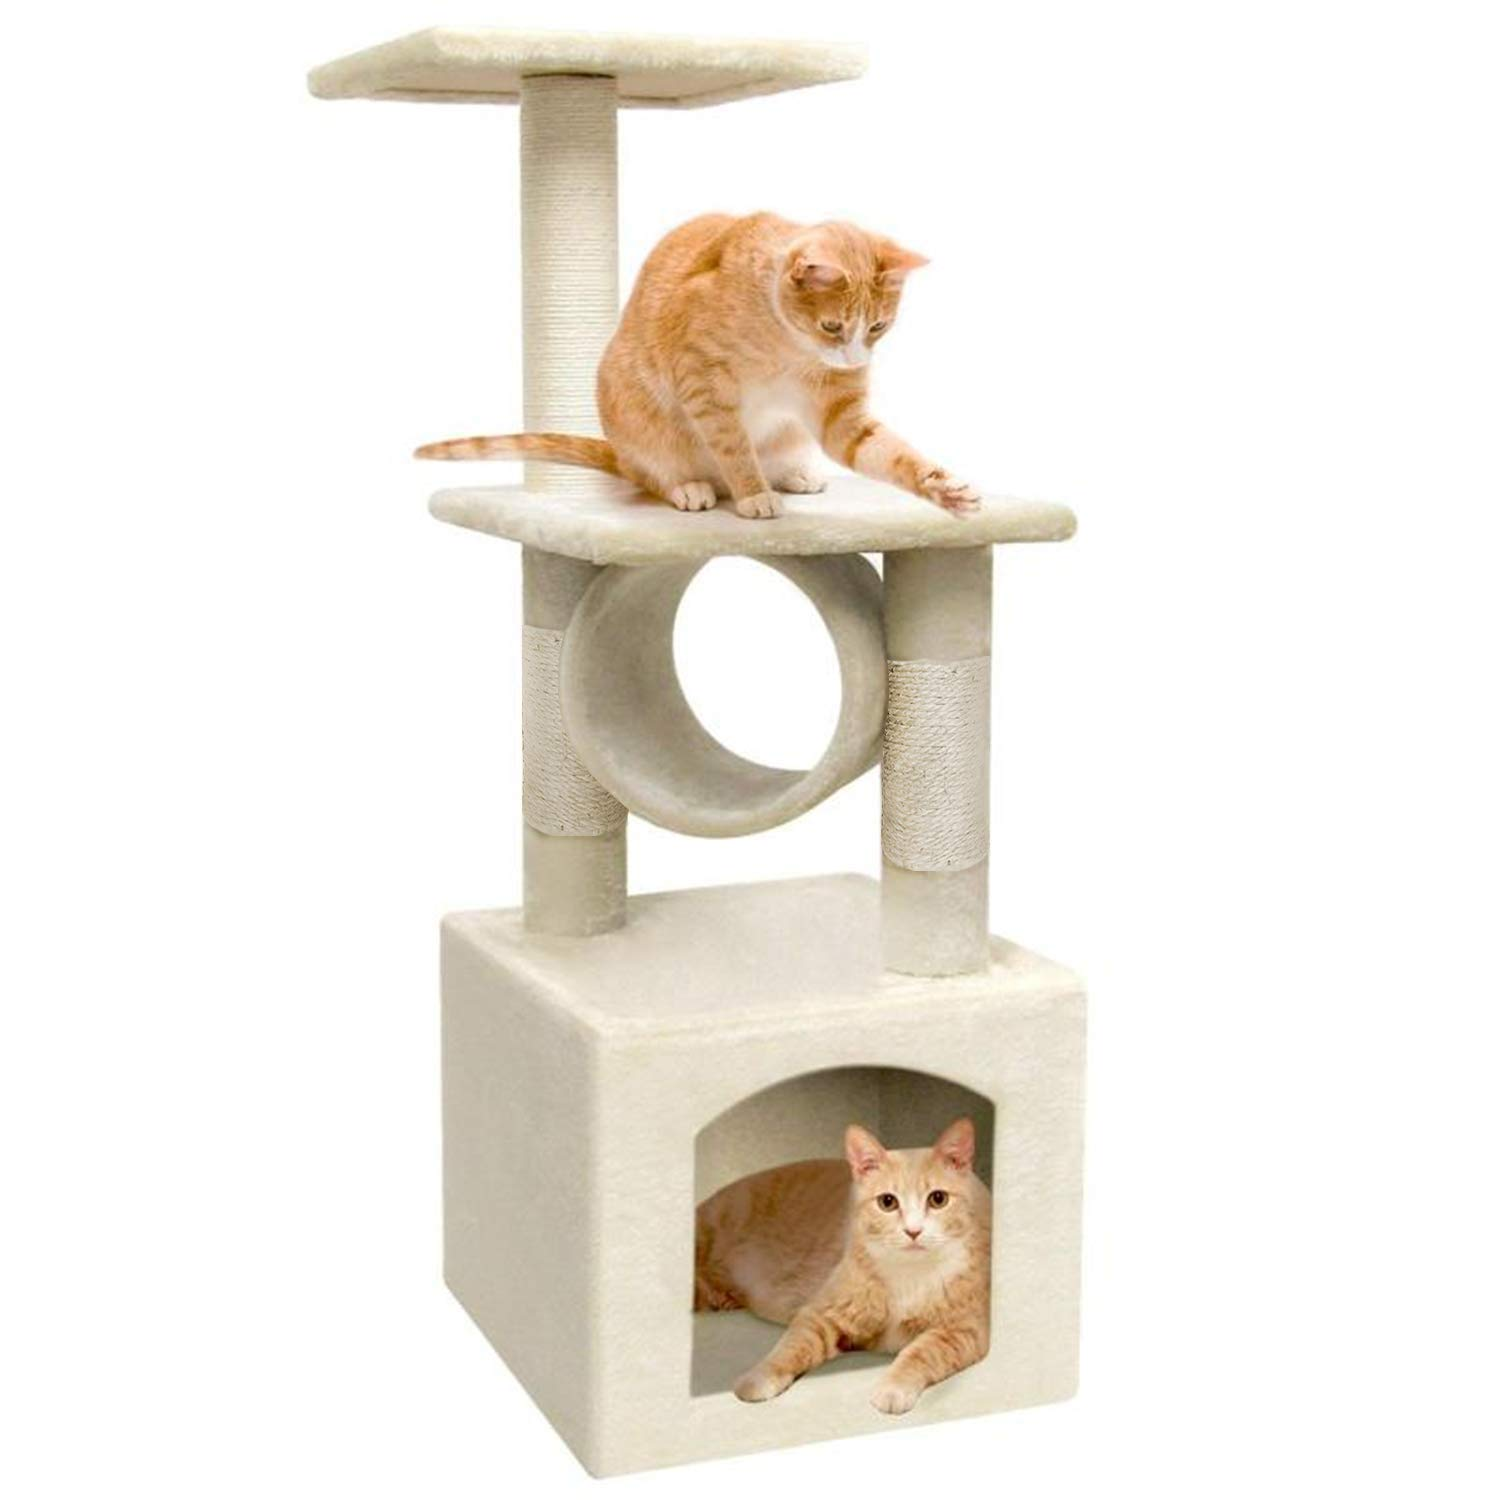 OOTORI Cat Tower Kittens Pet Play House Cat Activity Tree Condo Furniture by OOTORI